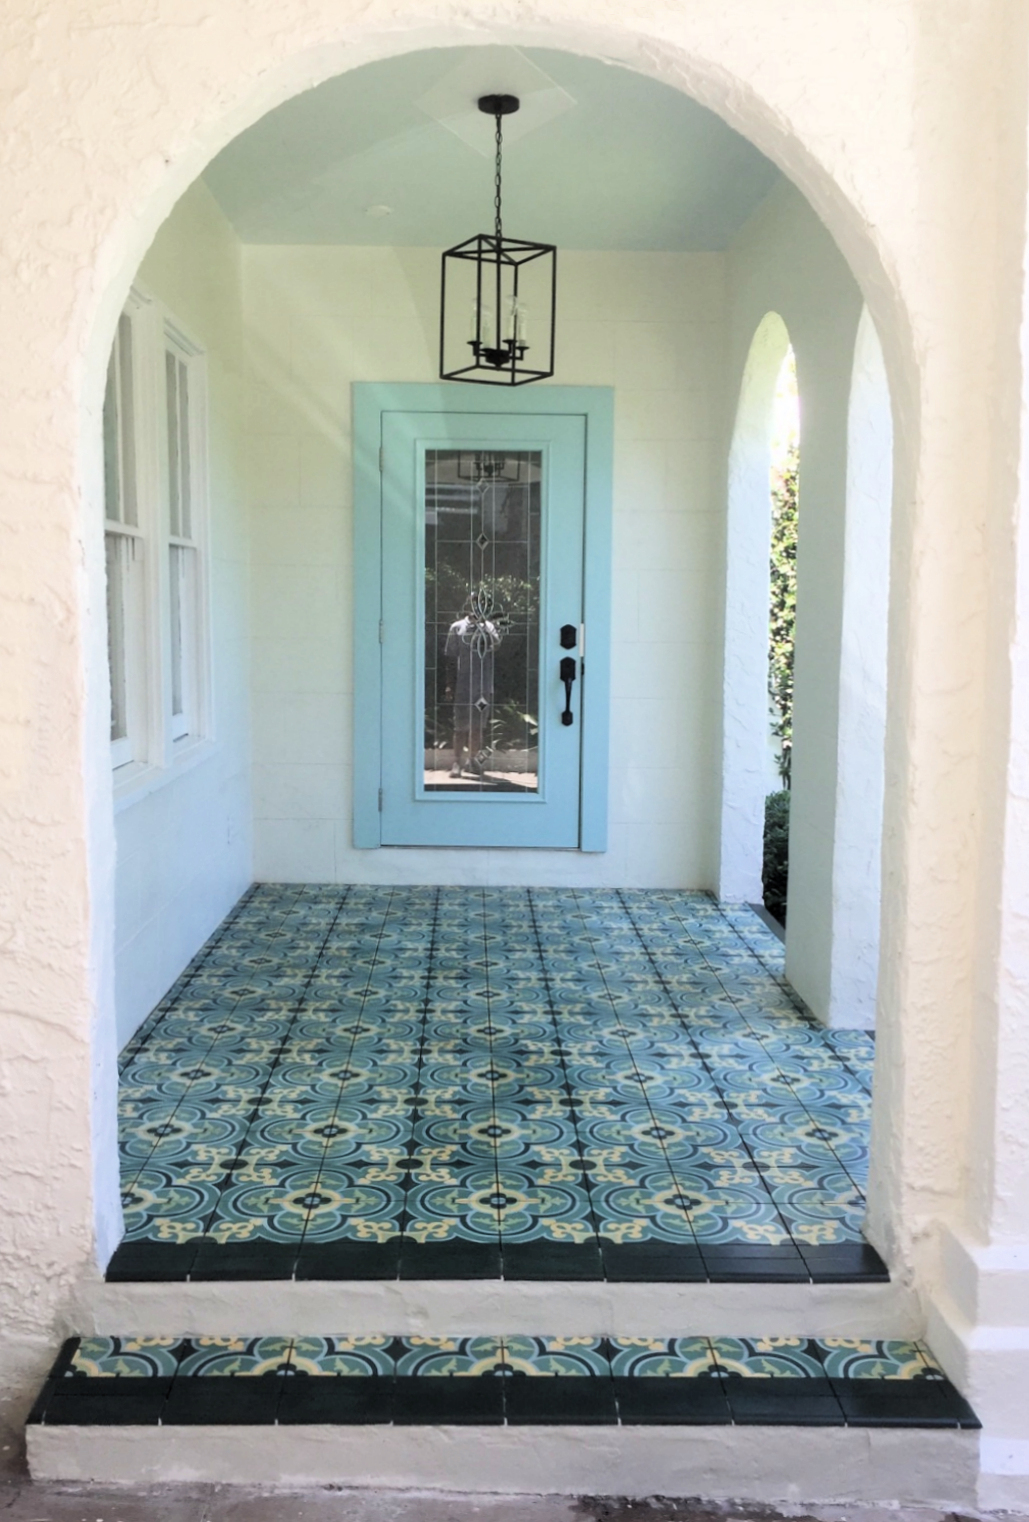 Entryway featuring green french inspired cement tile pattern bordered by solid dark green cement tile.